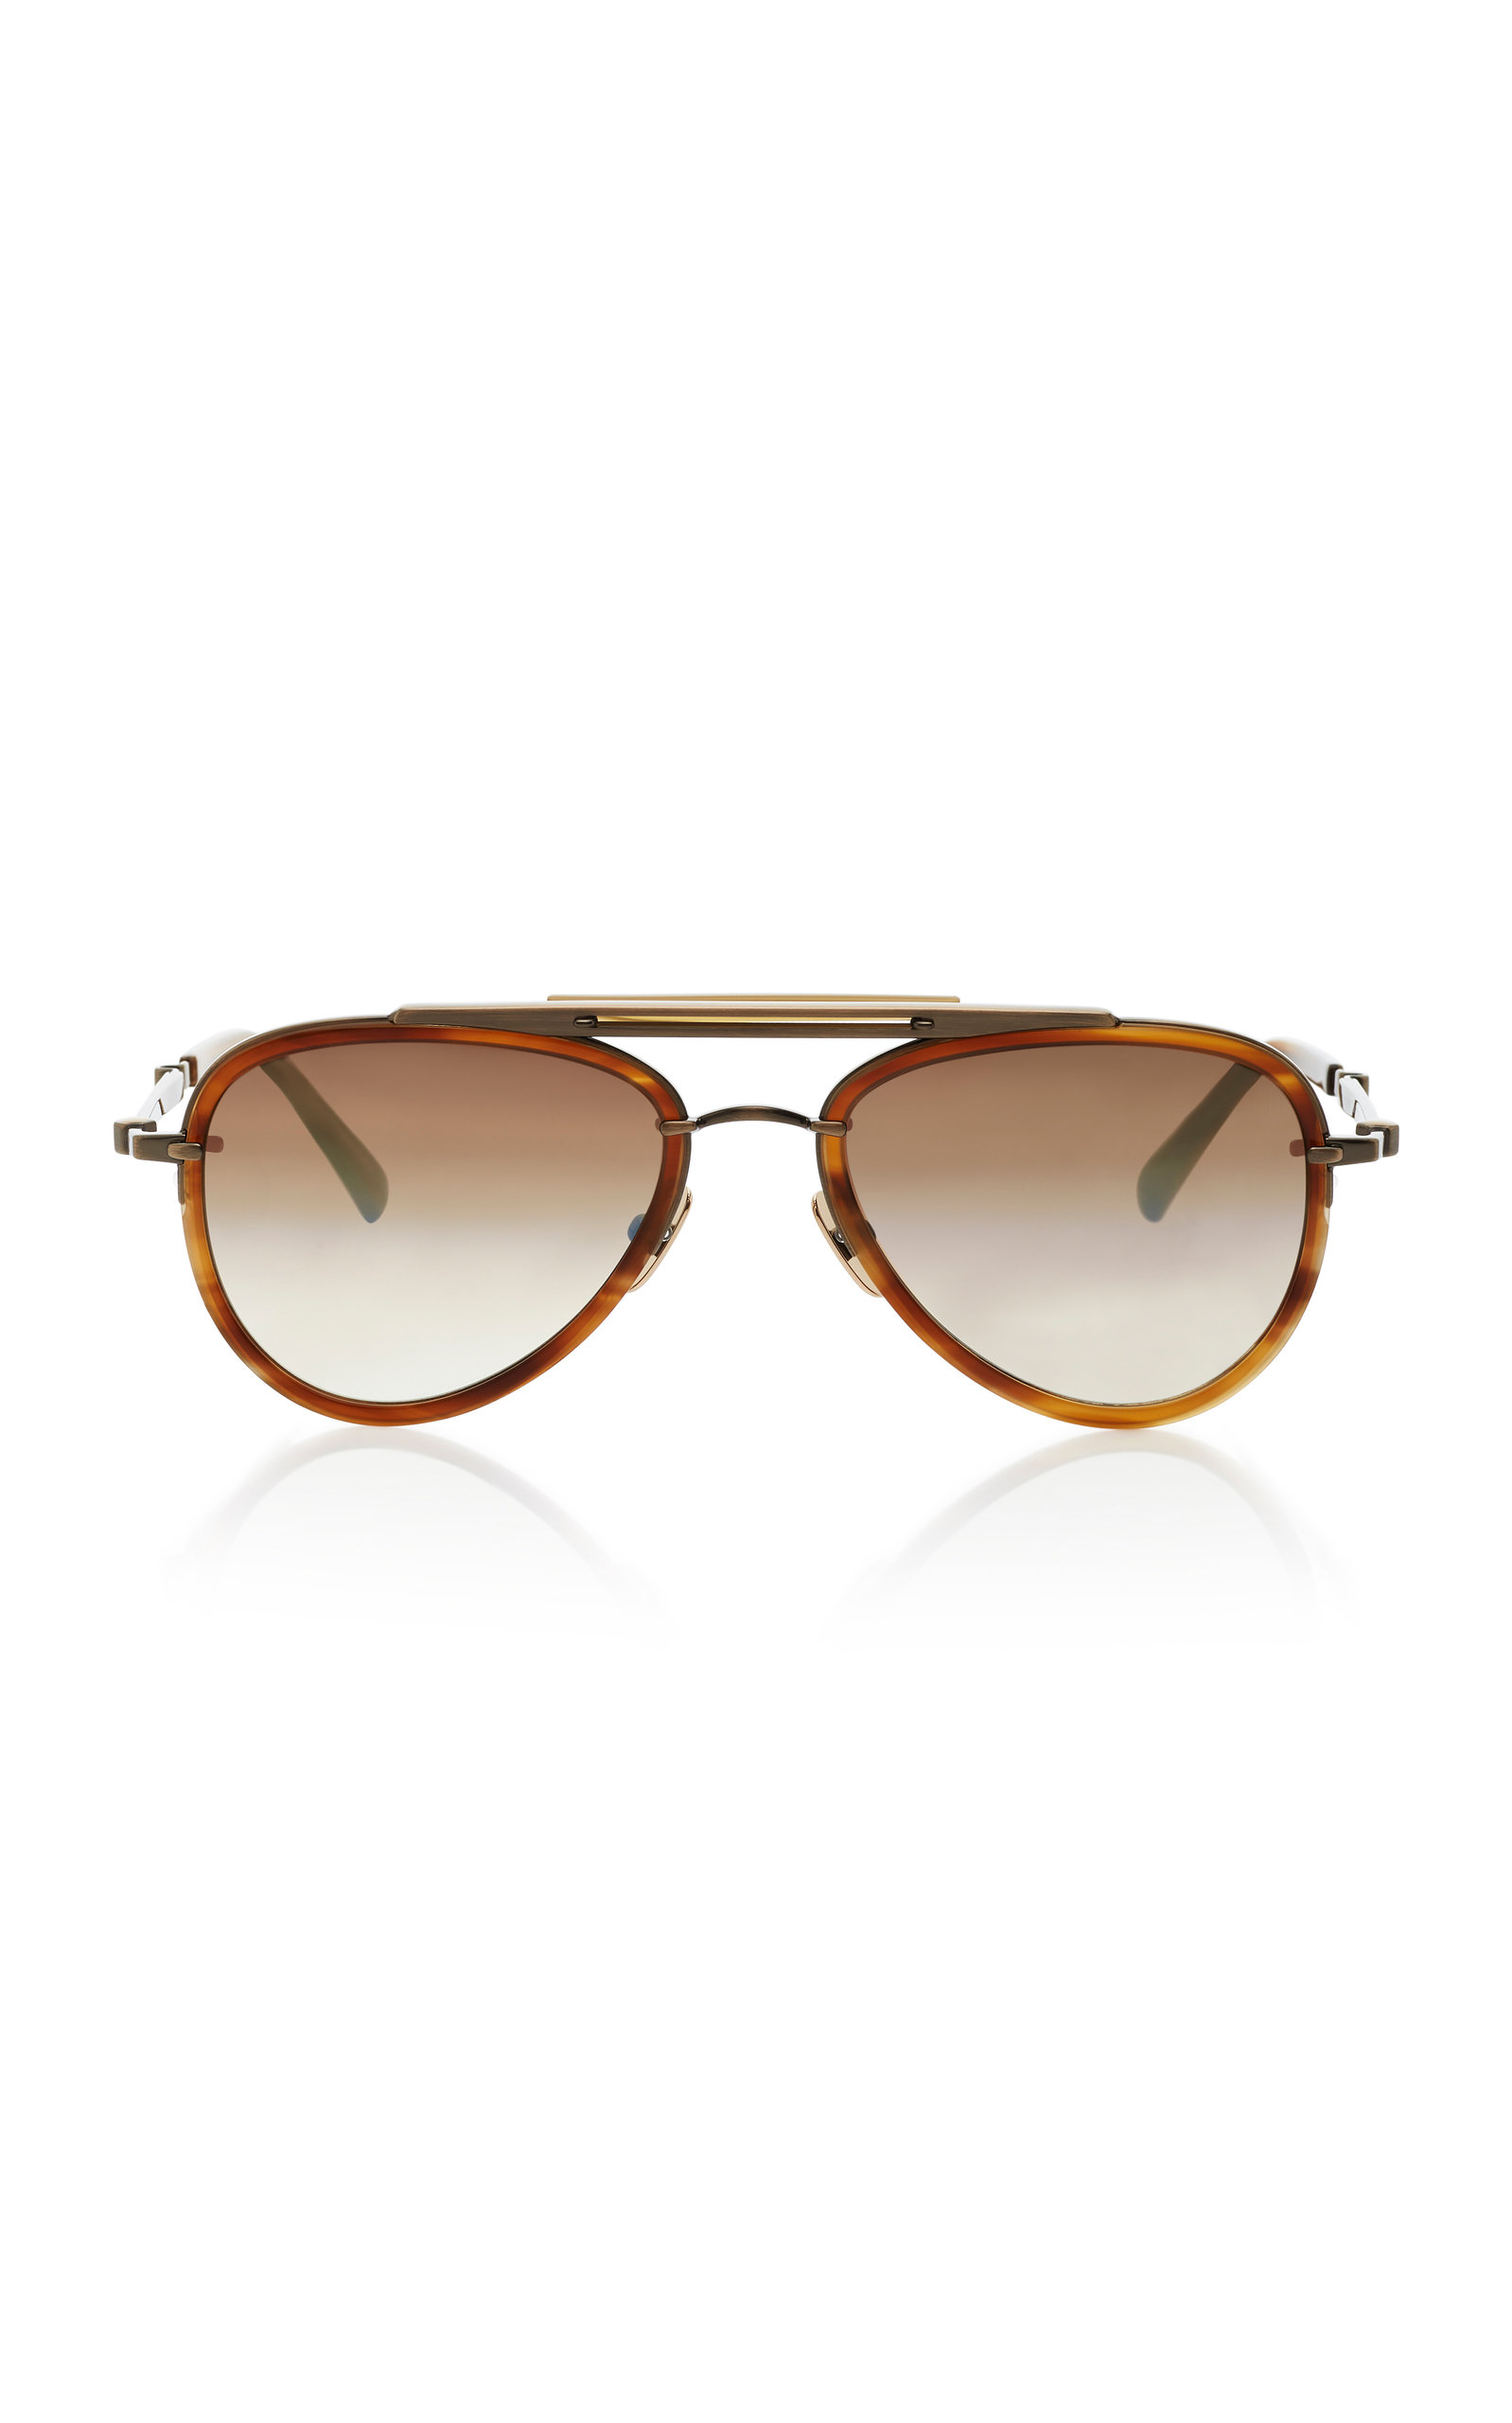 6bd5e93ca Doheny SL54 Aviator-Style Acetate And Metal Sunglasses by Mr. Leight ...